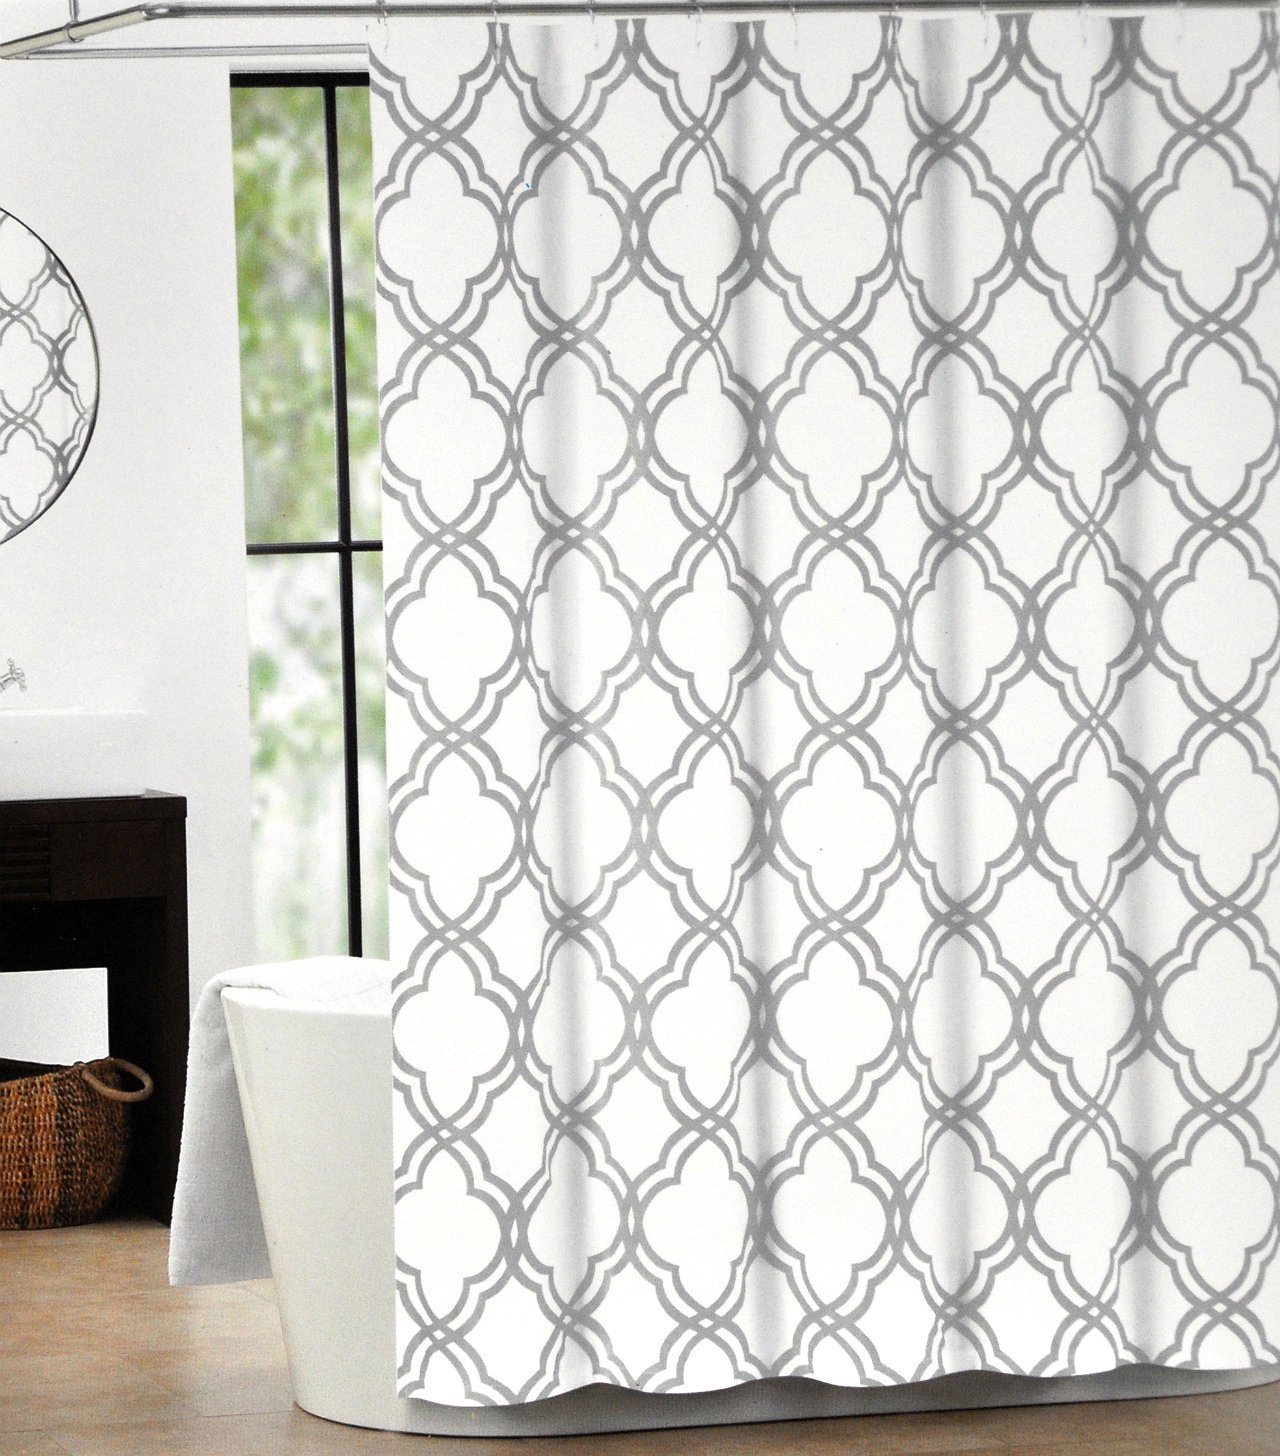 Us 17 84 15 Off Memory Home Max Studio Home Cotton Shower Curtain Moroccan Tile Quatrefoil Gray And White Lattice 70x72inch Bathroom Products In